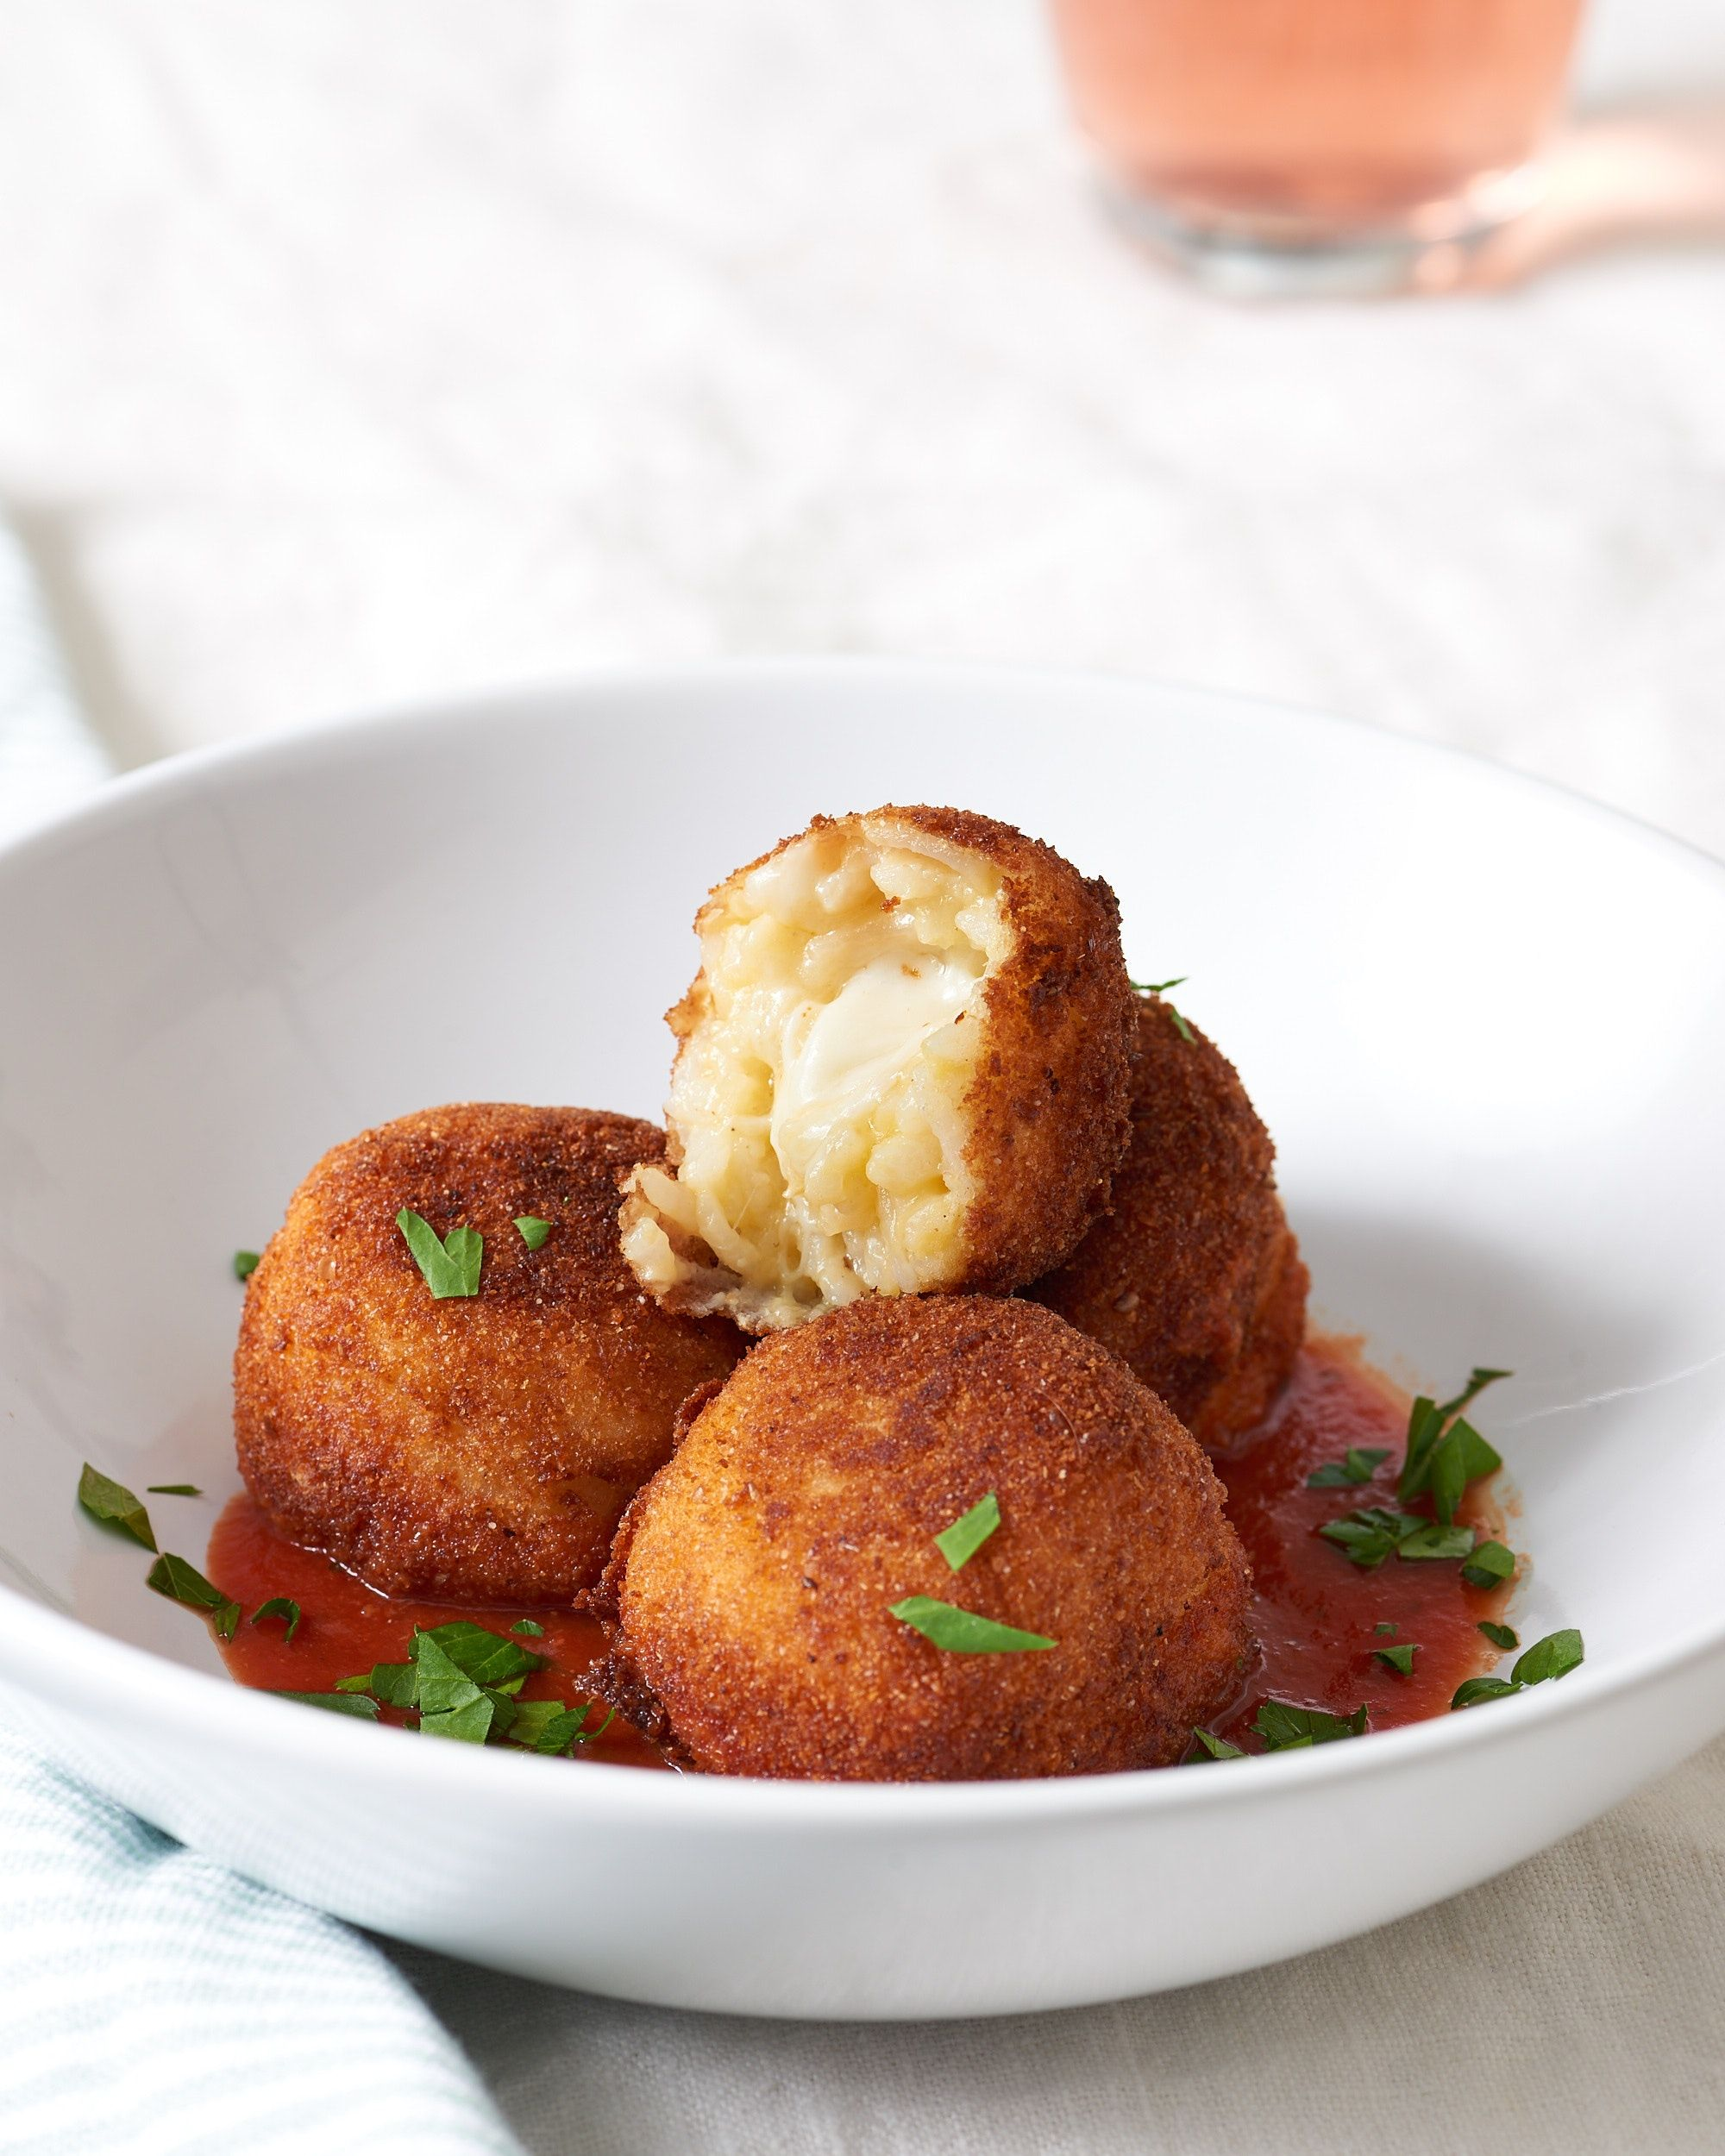 How To Make Easy Leftover Risotto Balls Arancini Cooking Lessons from The Kitchn